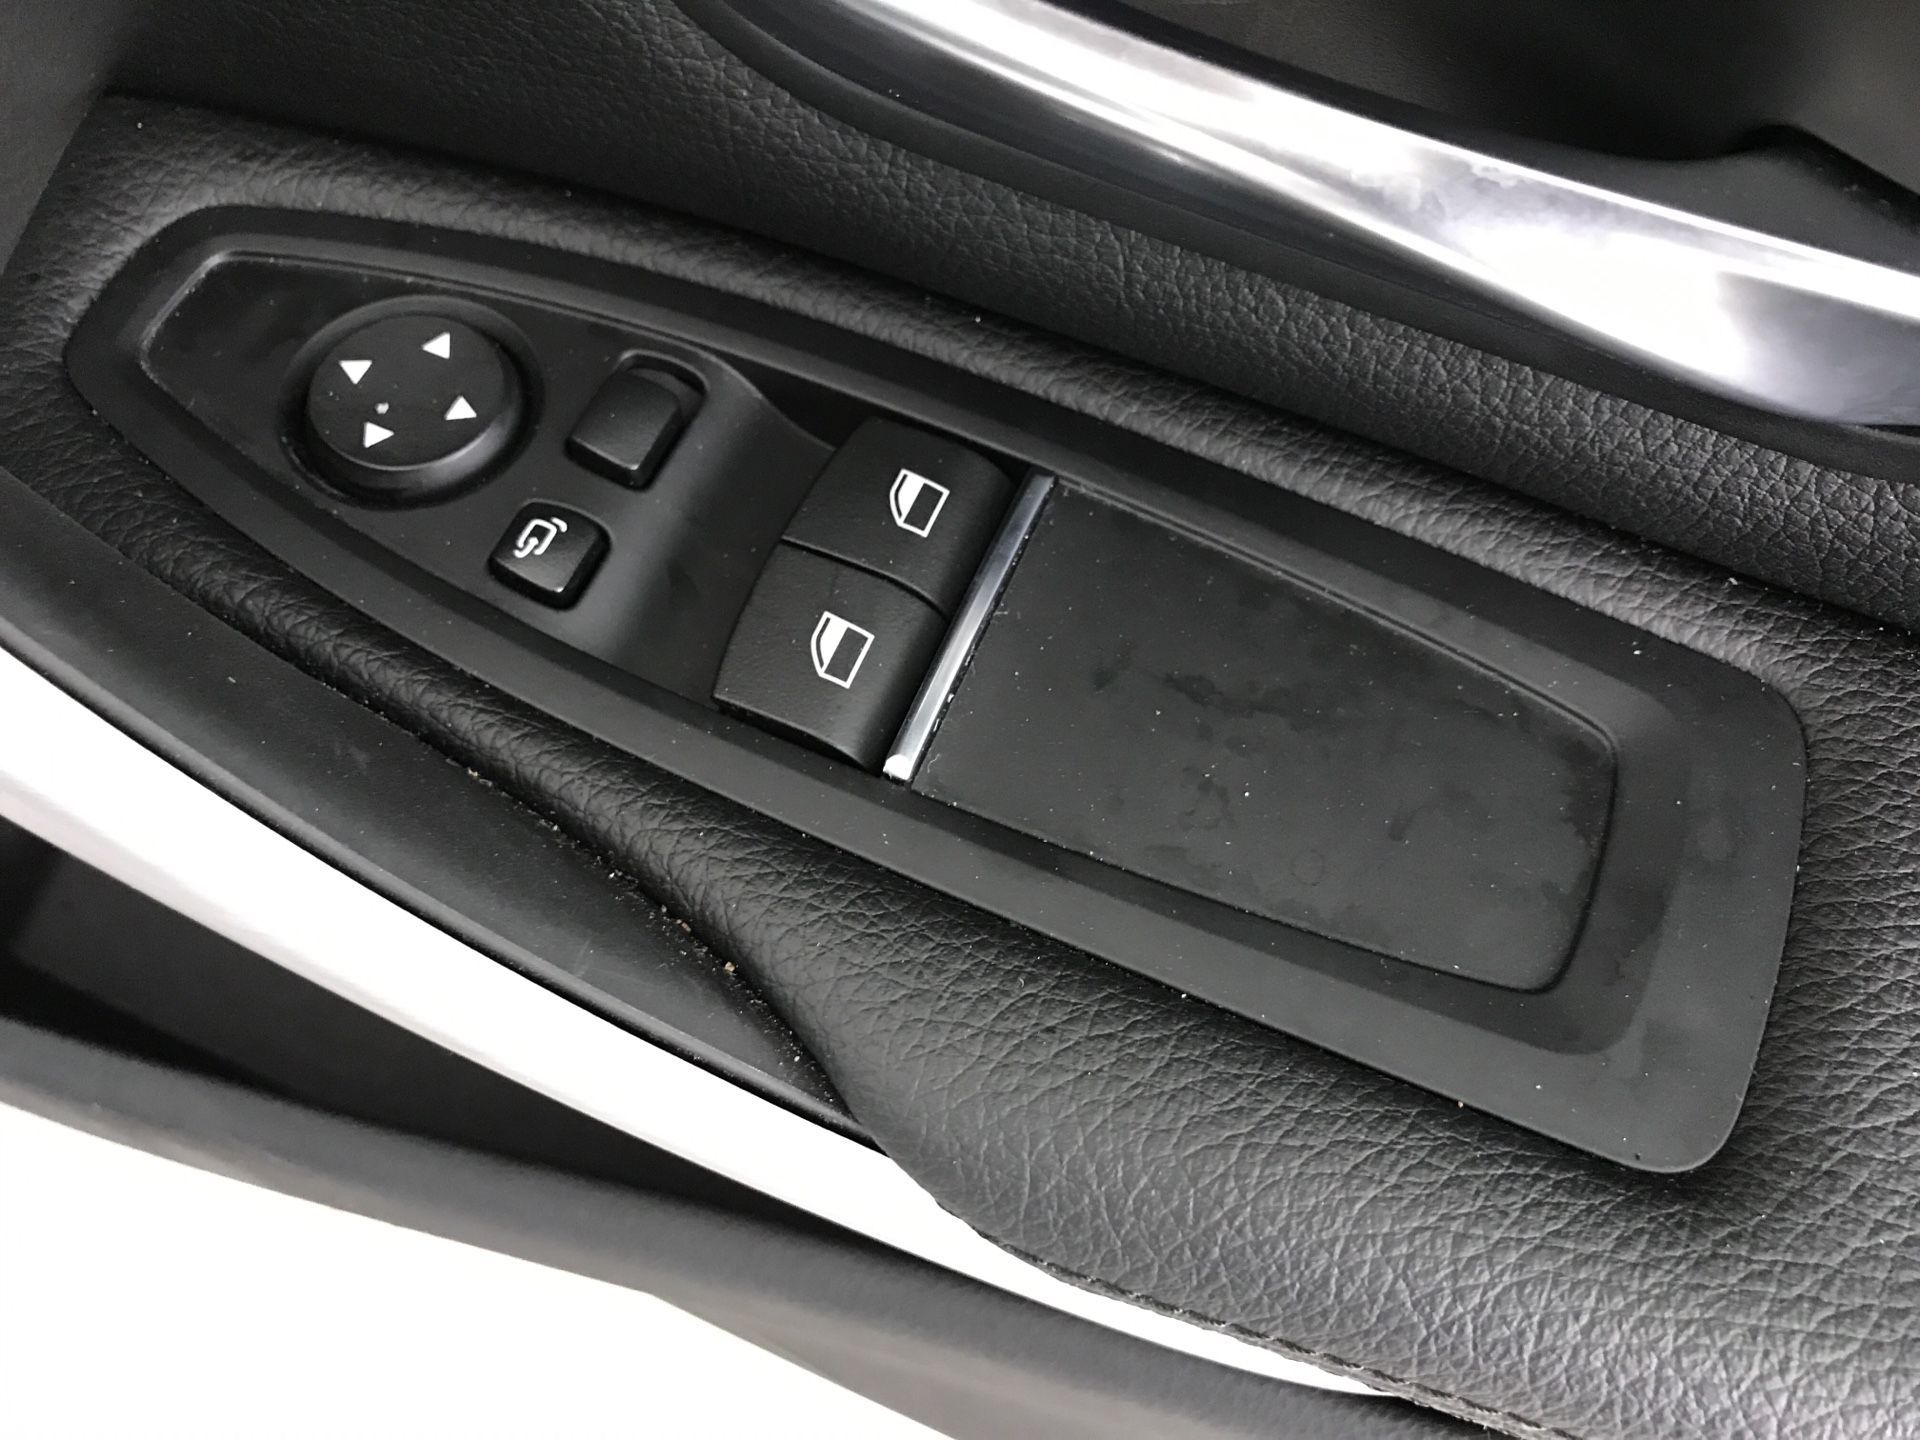 Image 12 - BMW 430d M Sport Coupe (YE19CCD)